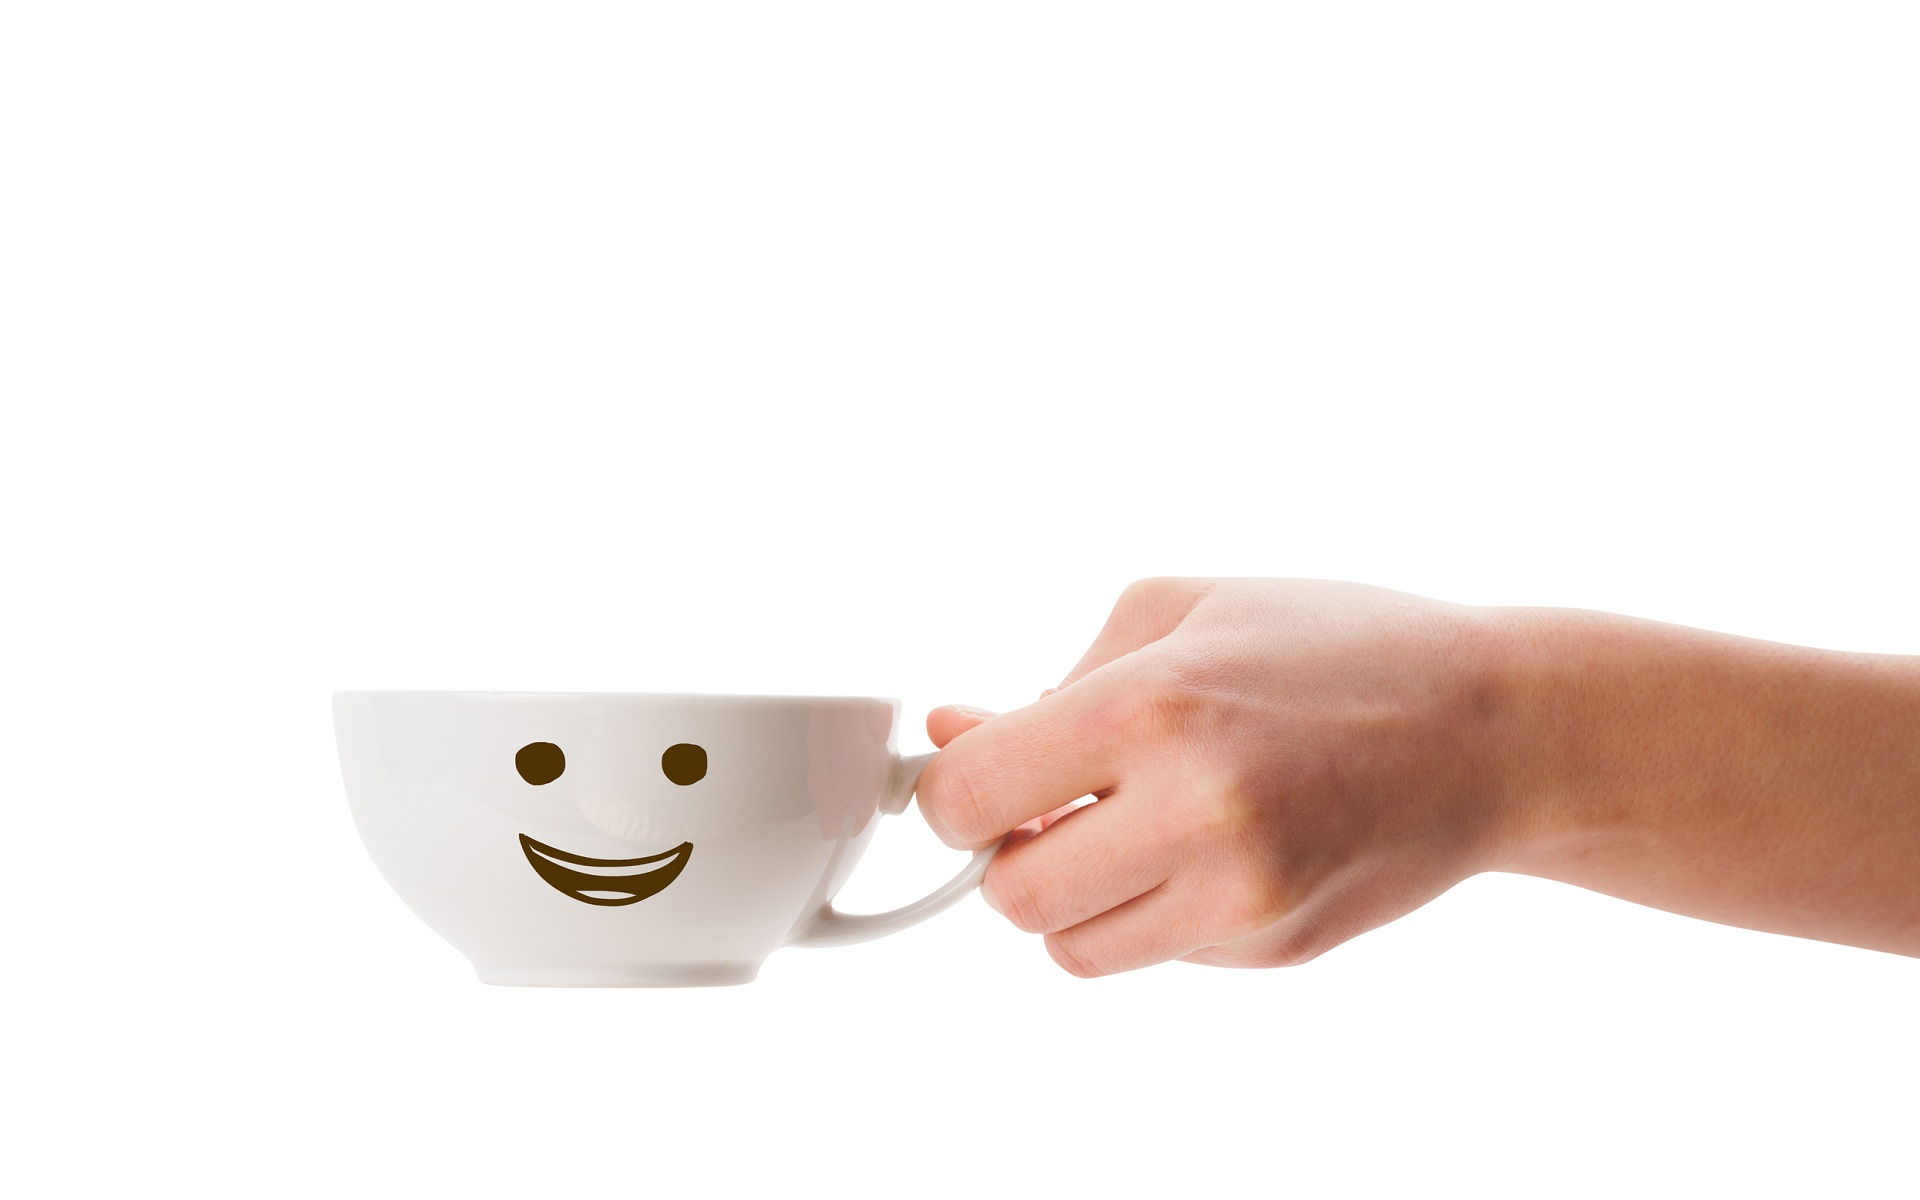 Cup Hand Photo